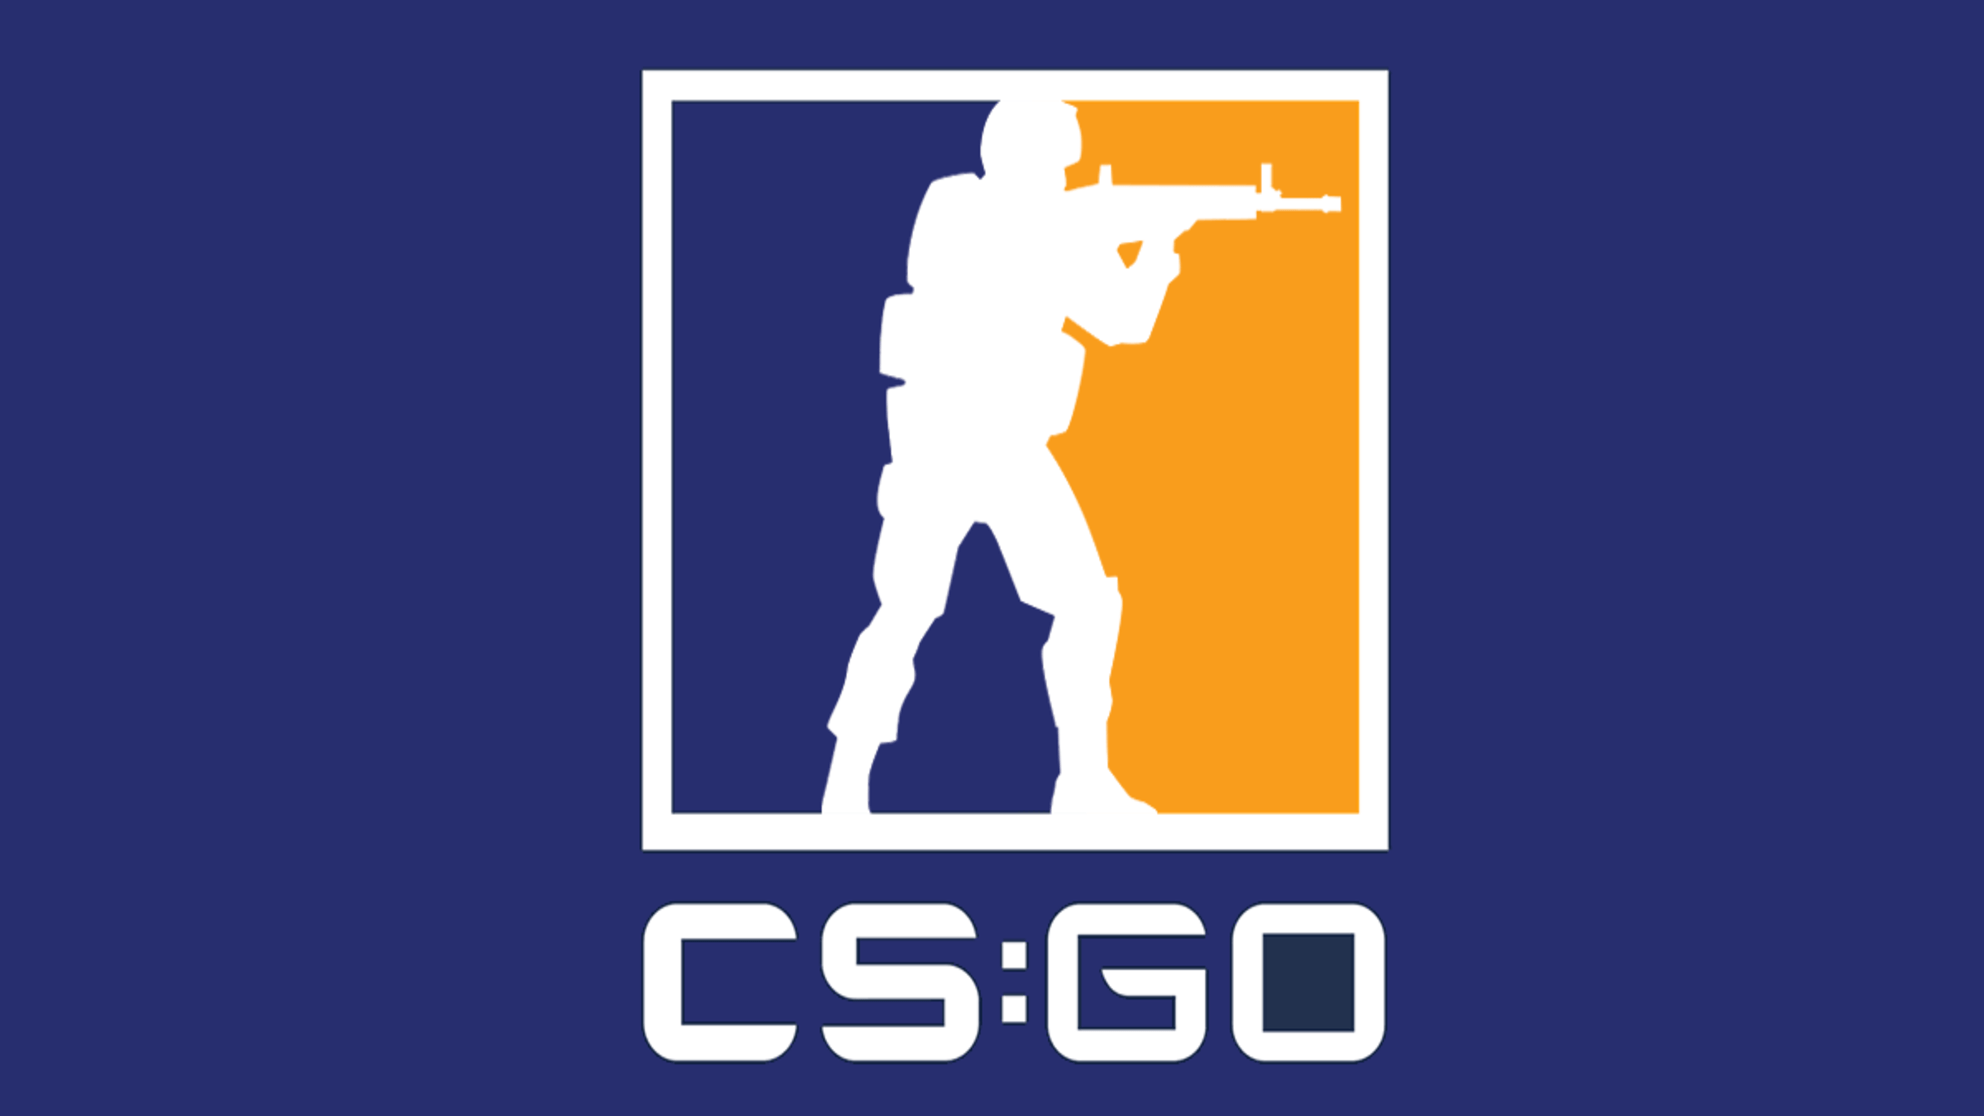 CS:GO January 13 patch notes